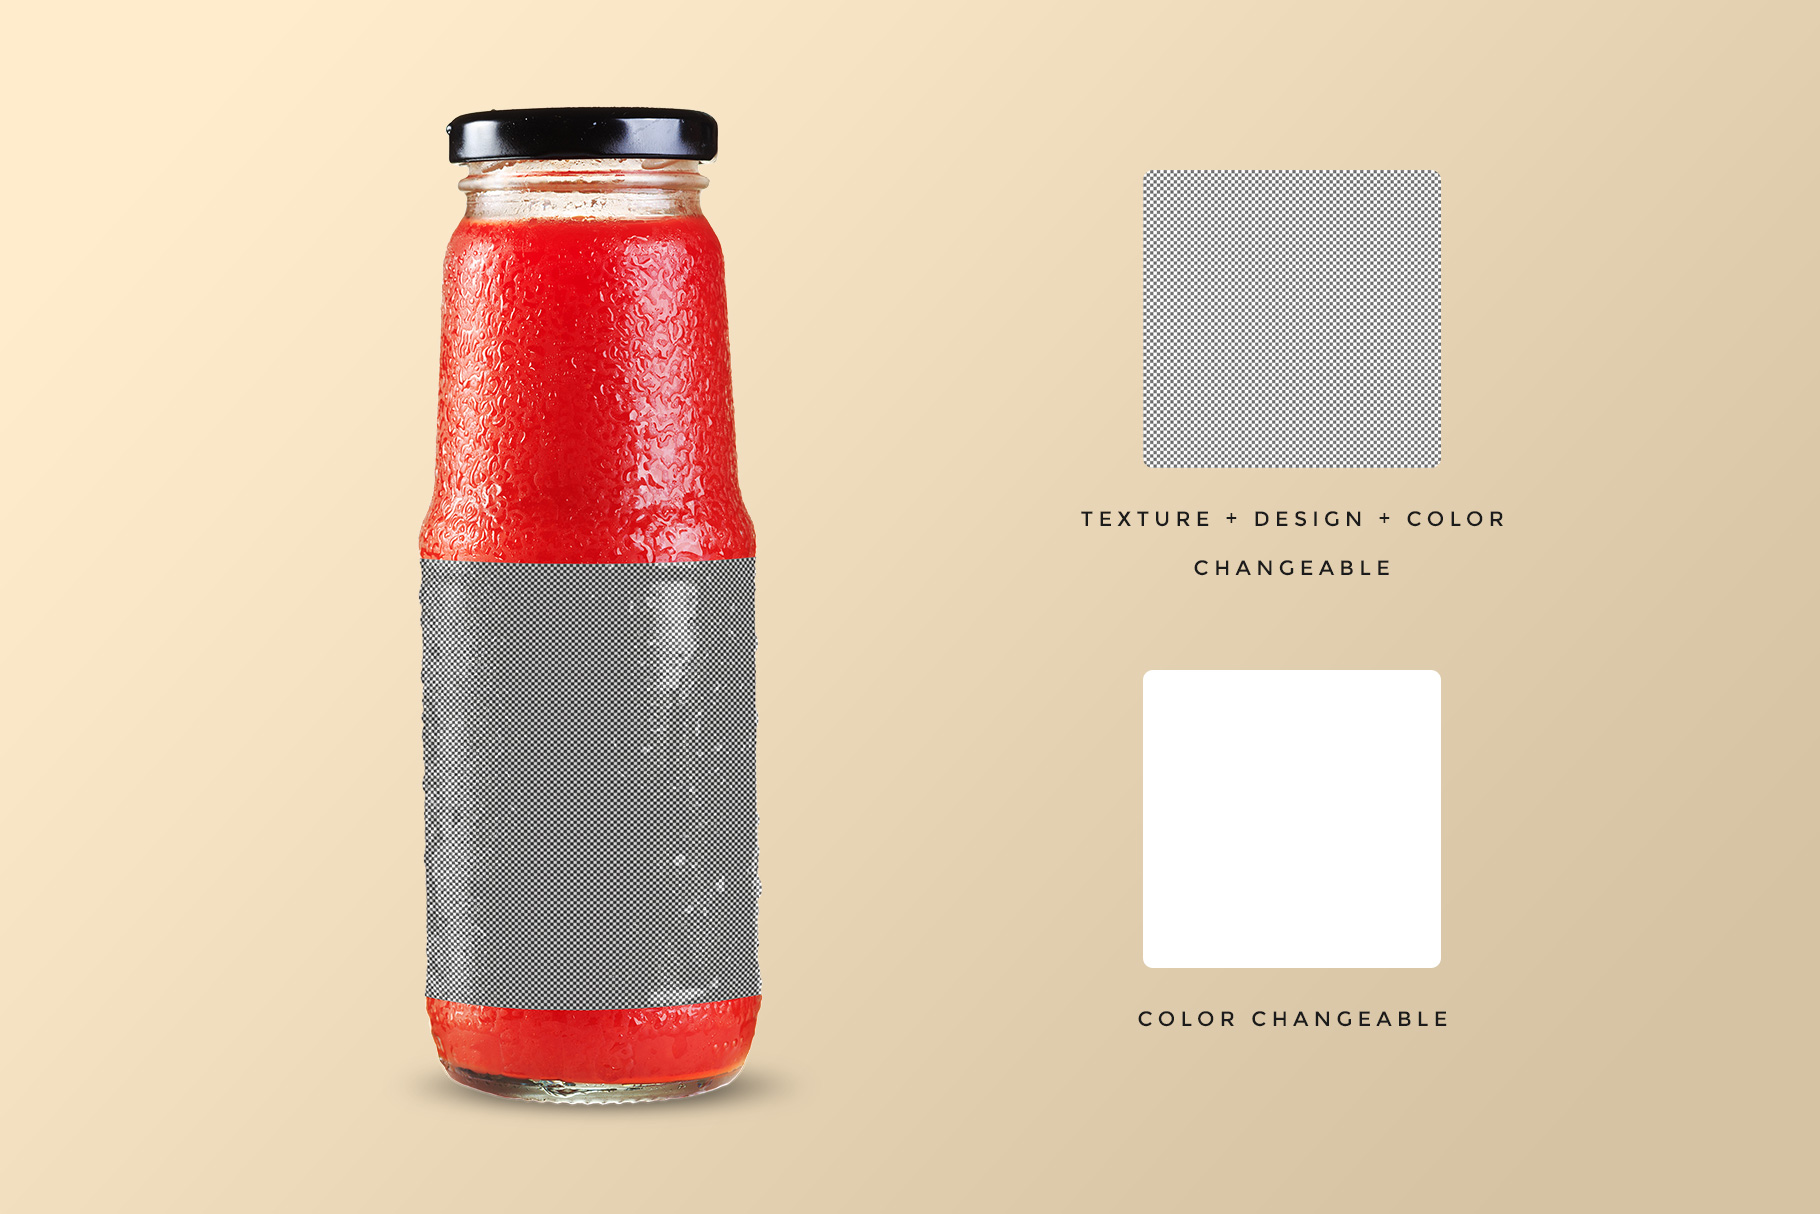 editability of the fruit juice glass container mockup